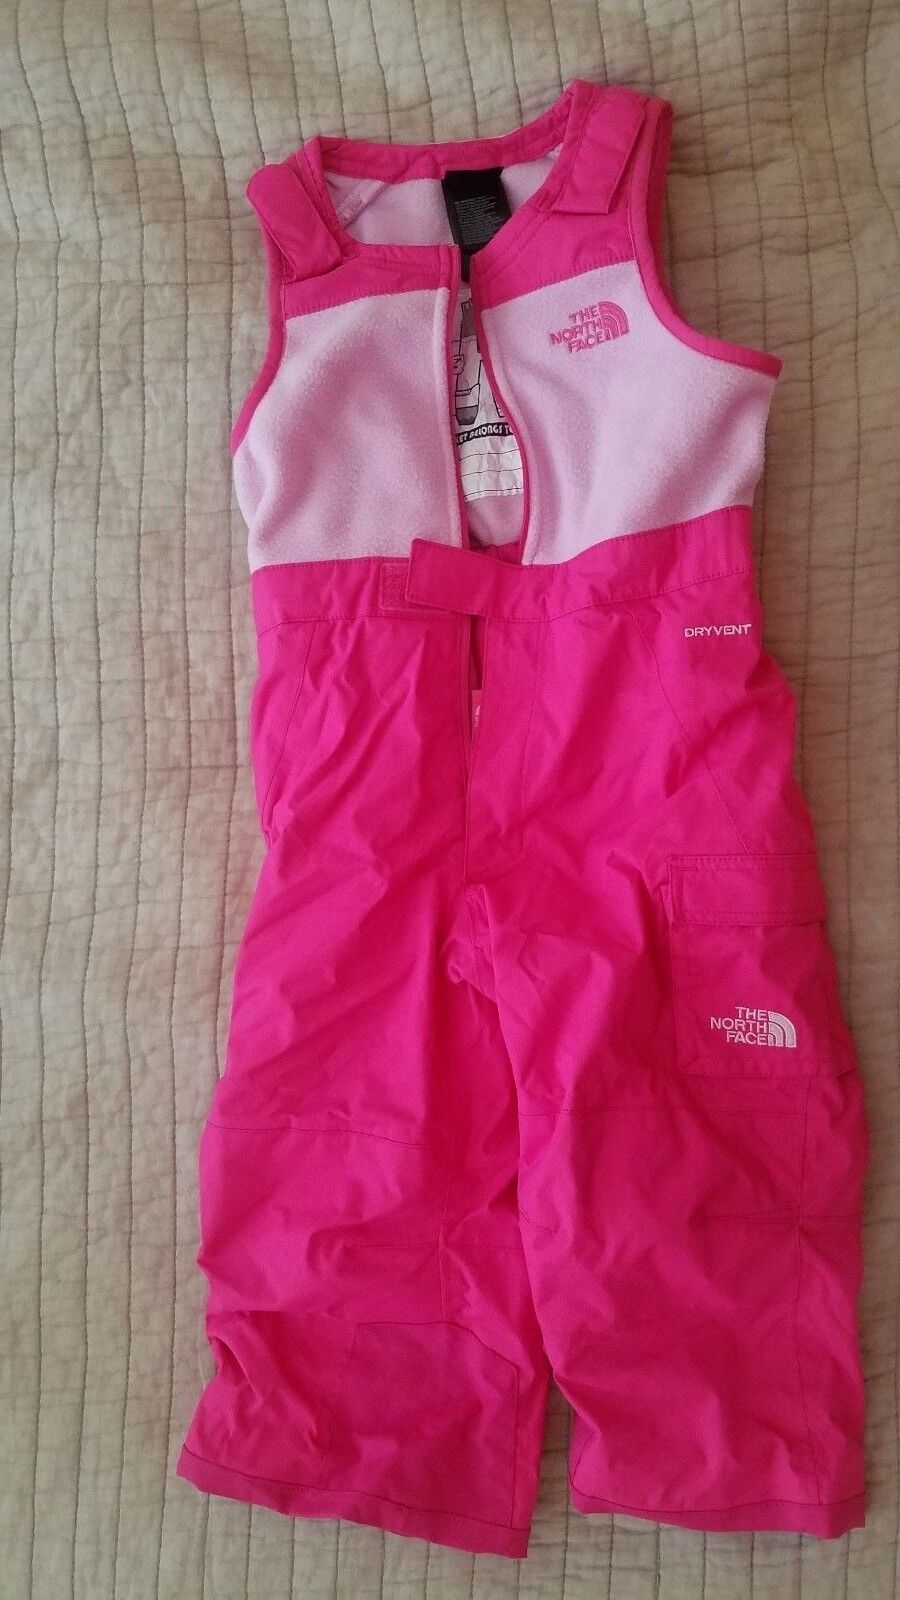 The North Face Kids  - Insulated Bib (Toddler) Girl's Snow Bibs Size 2  your satisfaction is our target